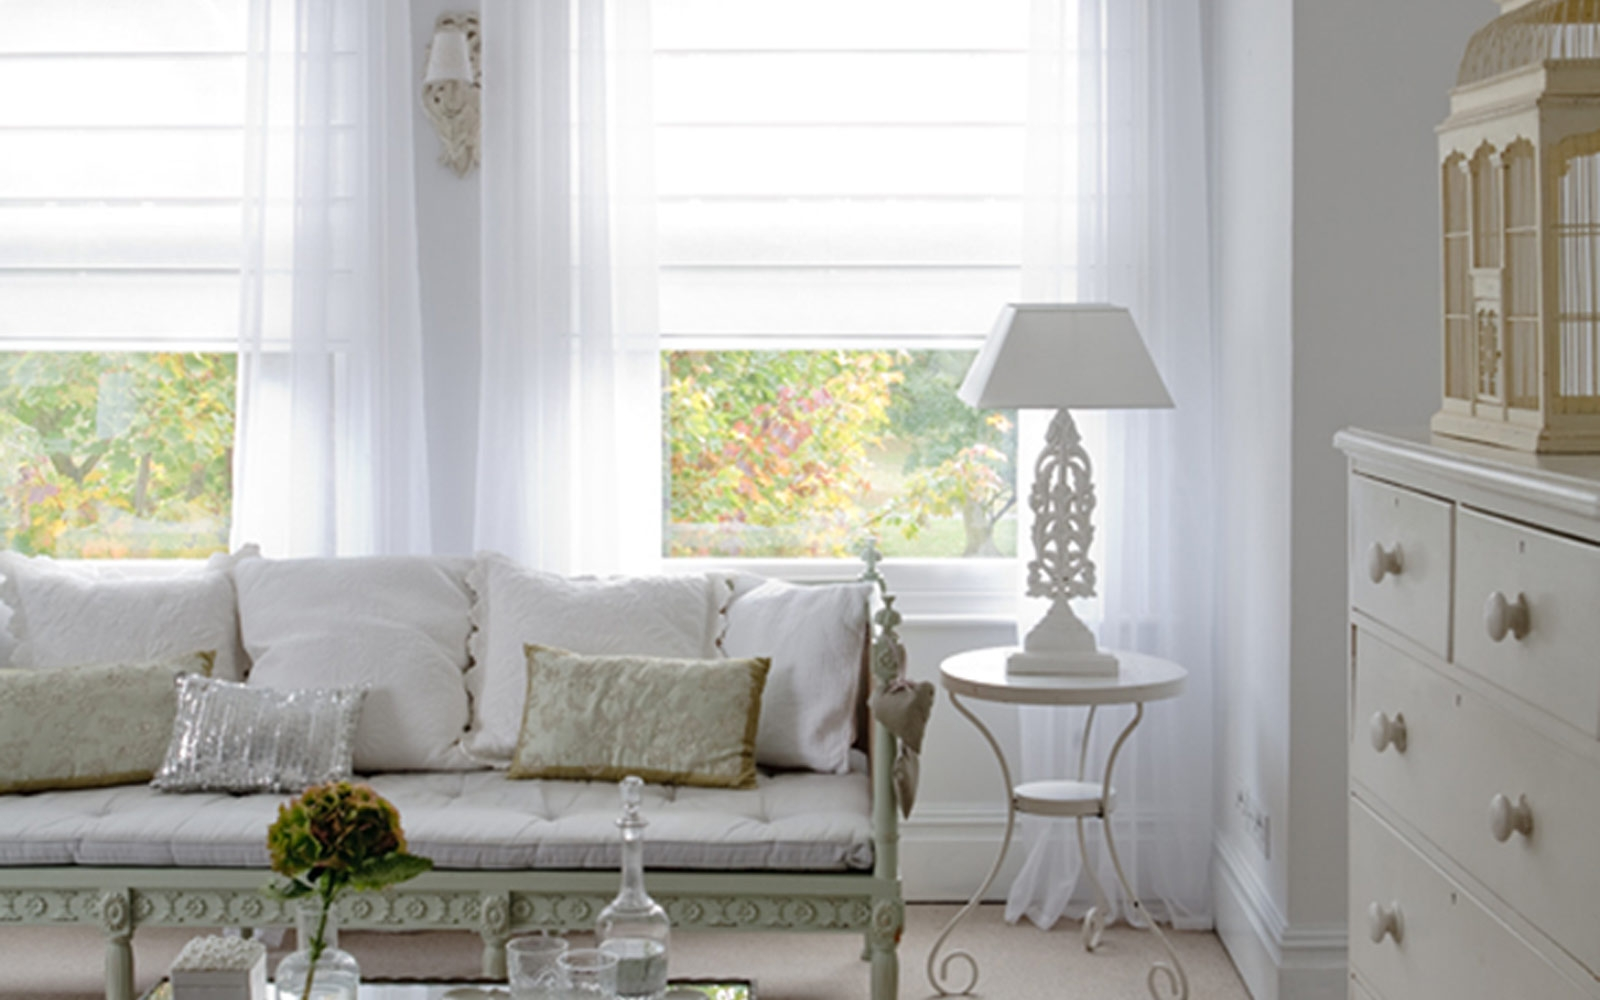 Roman Blinds Surrey Blinds Shutters Intended For Plain Roller Blinds (Image 14 of 15)